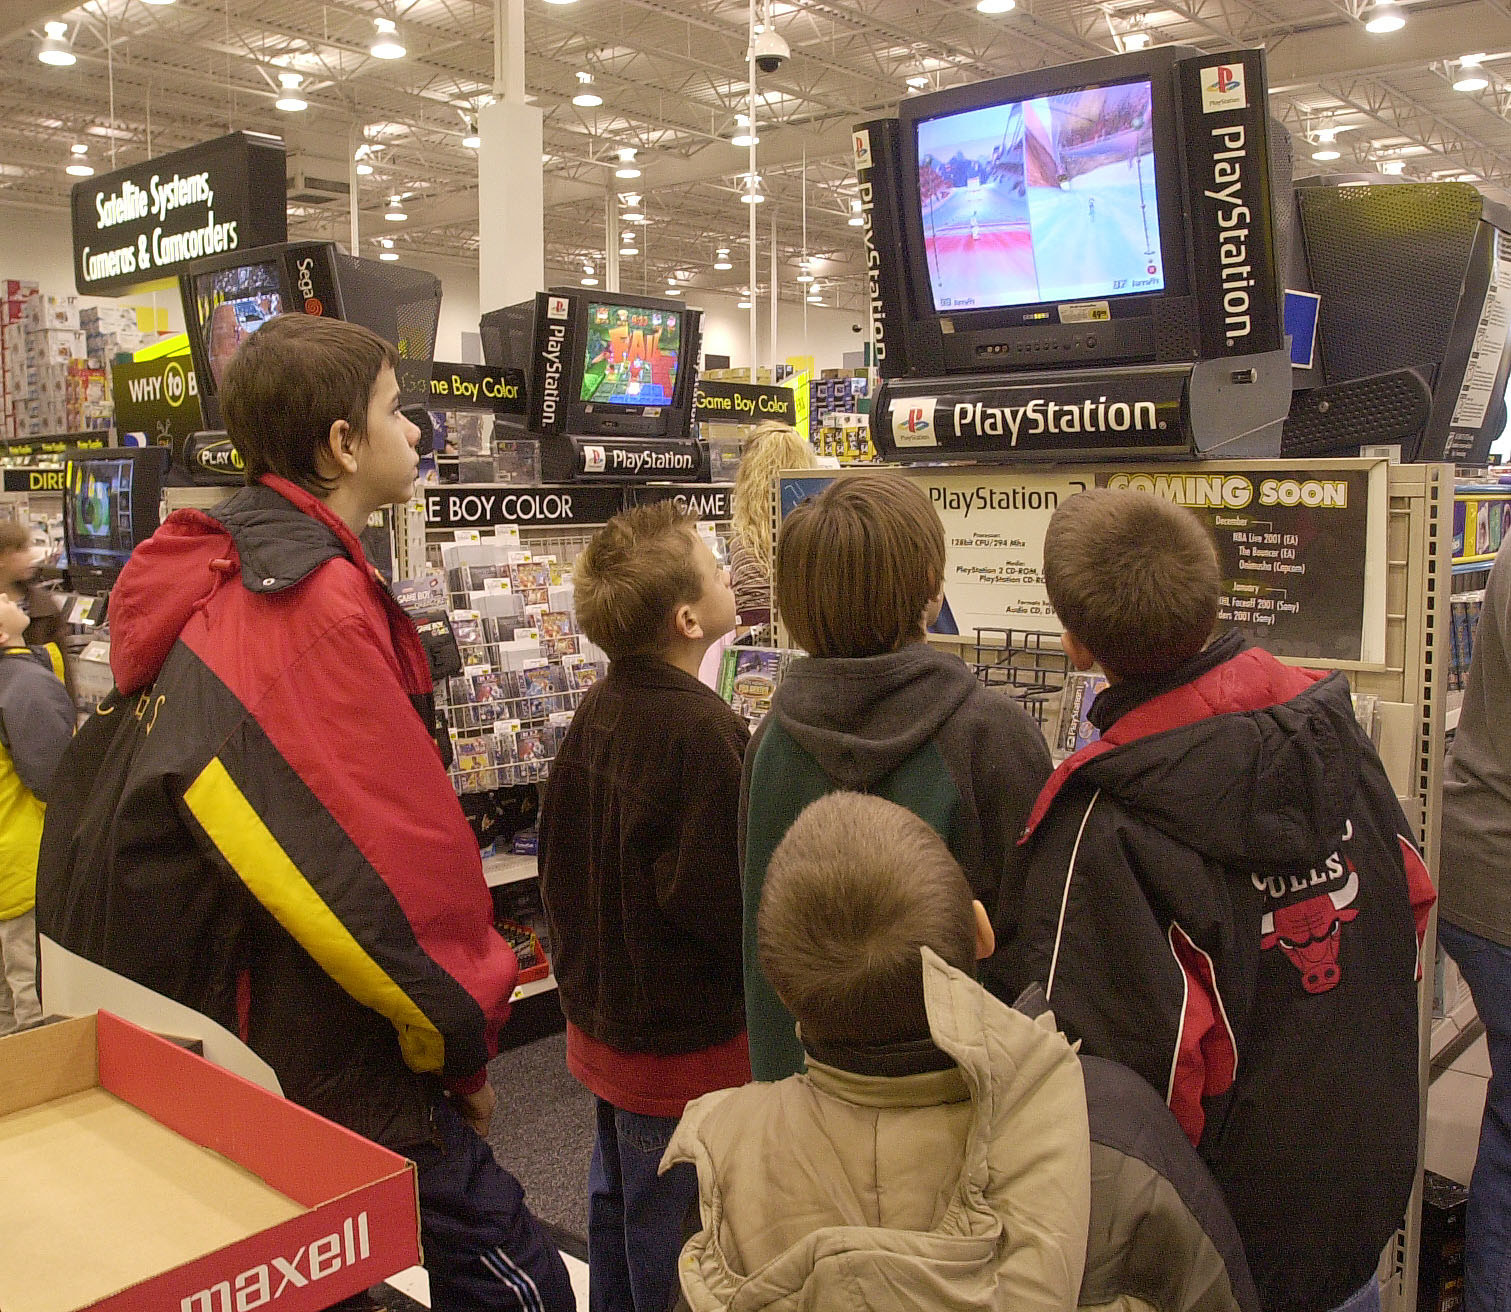 A bunch of kids playing PlayStation in a display at a Best Buy